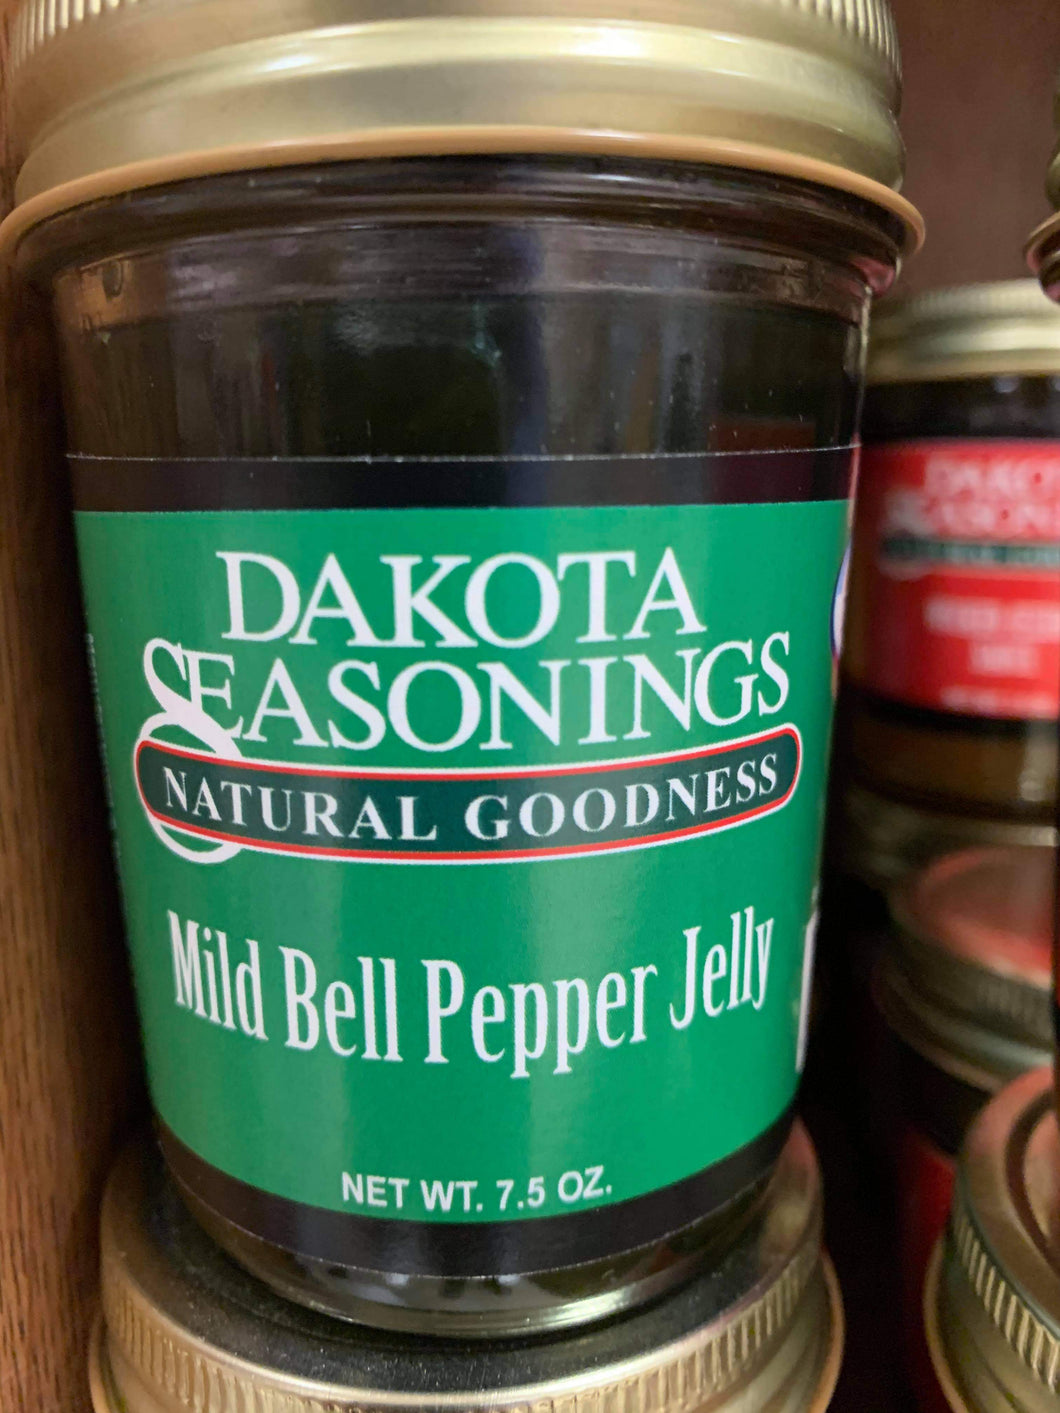 Dakota seasonings Mild Bell Pepper Jelly